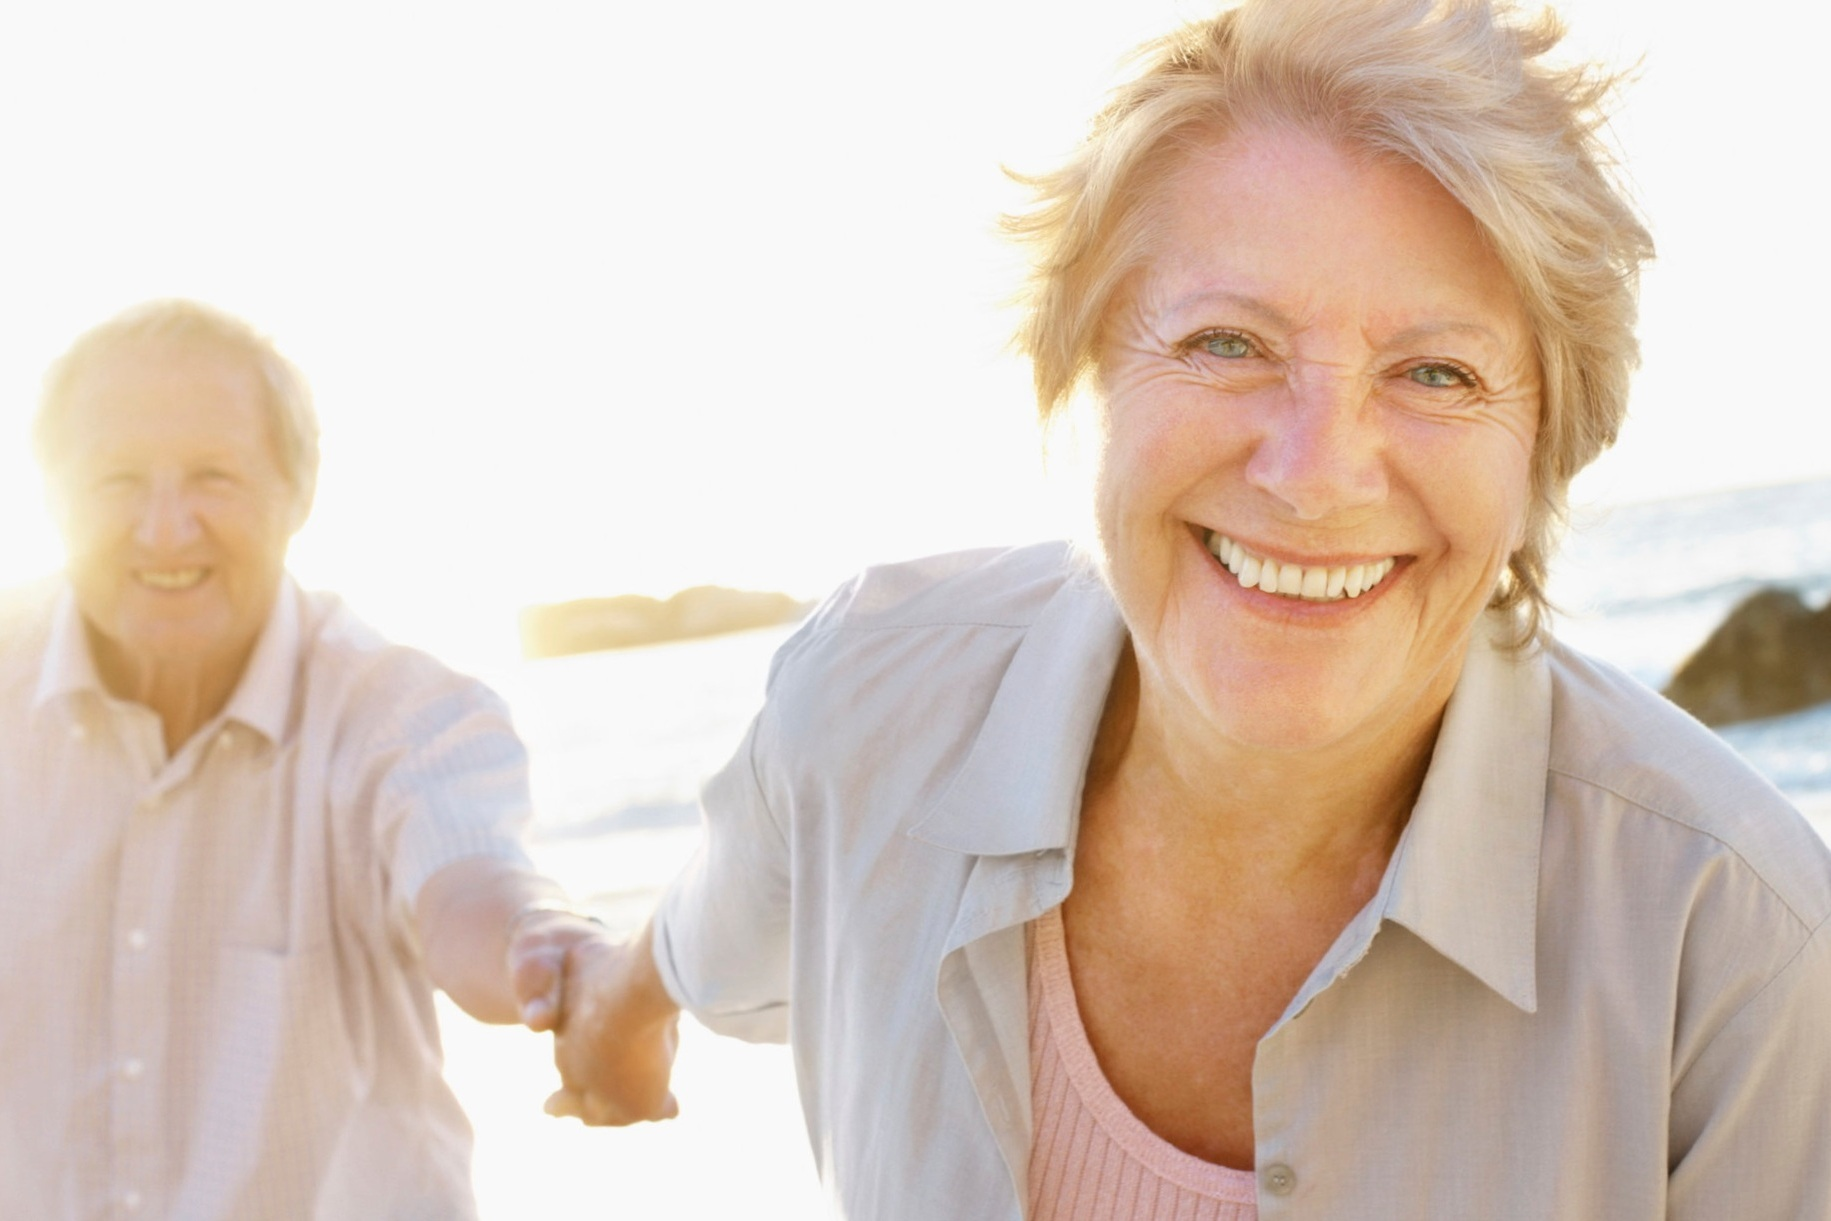 By 2021 the first of 76M Baby Boomers will turn 75 - Nearly 30% of people over 75 need long-term care today. Another 40% will need some form of long-term care within their lifetime.